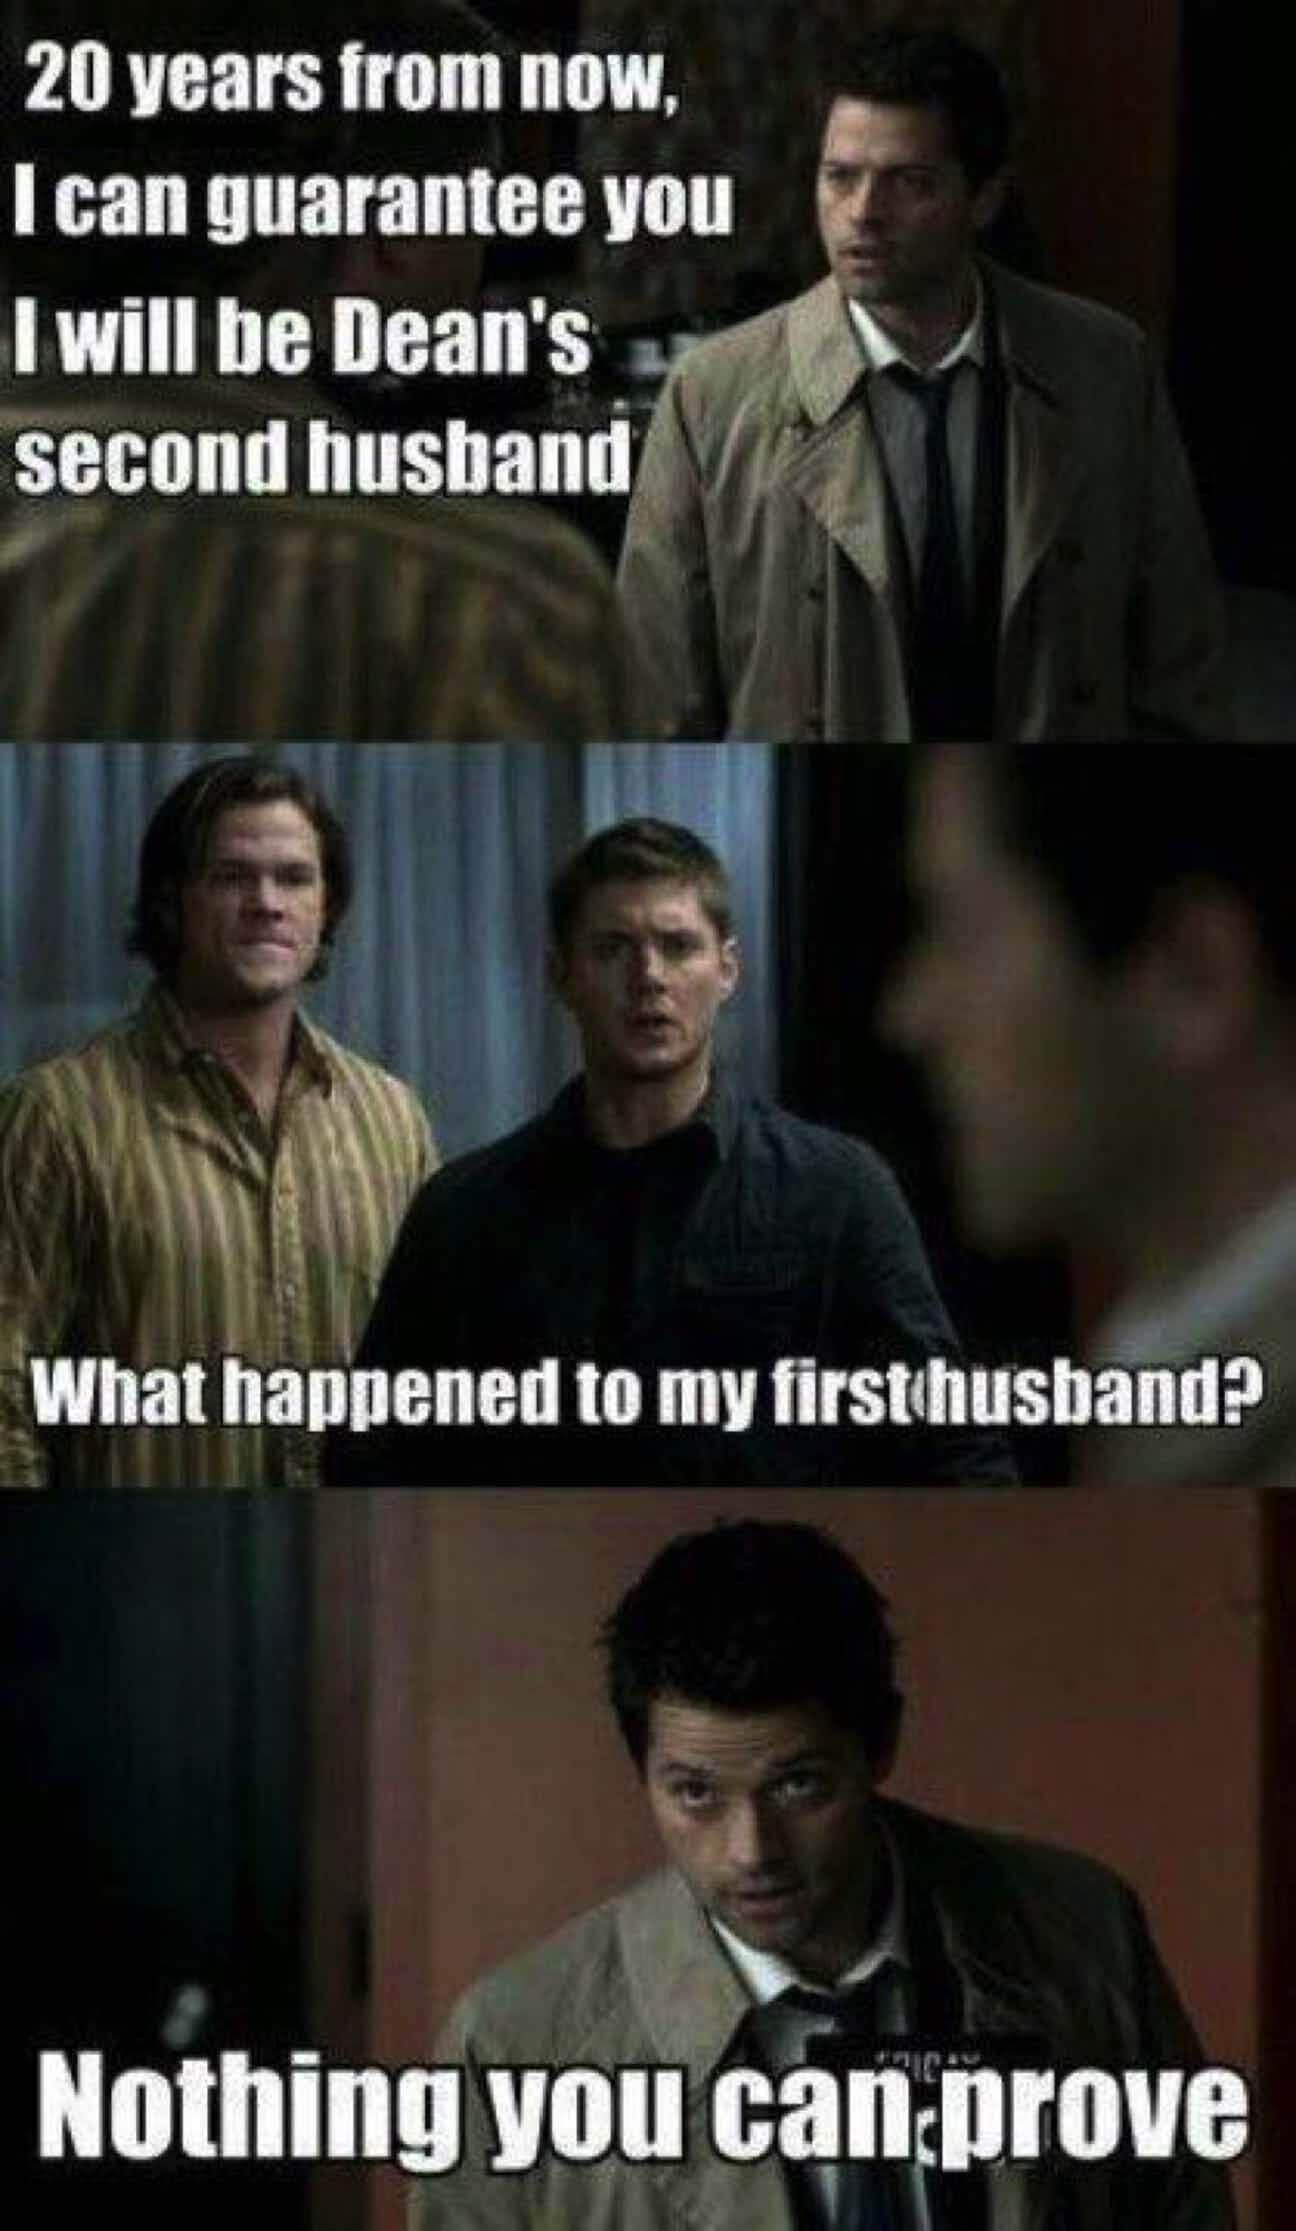 5c8087297472a067cd724c2b0d083070 30 supernatural memes that prove we all watch too much tv